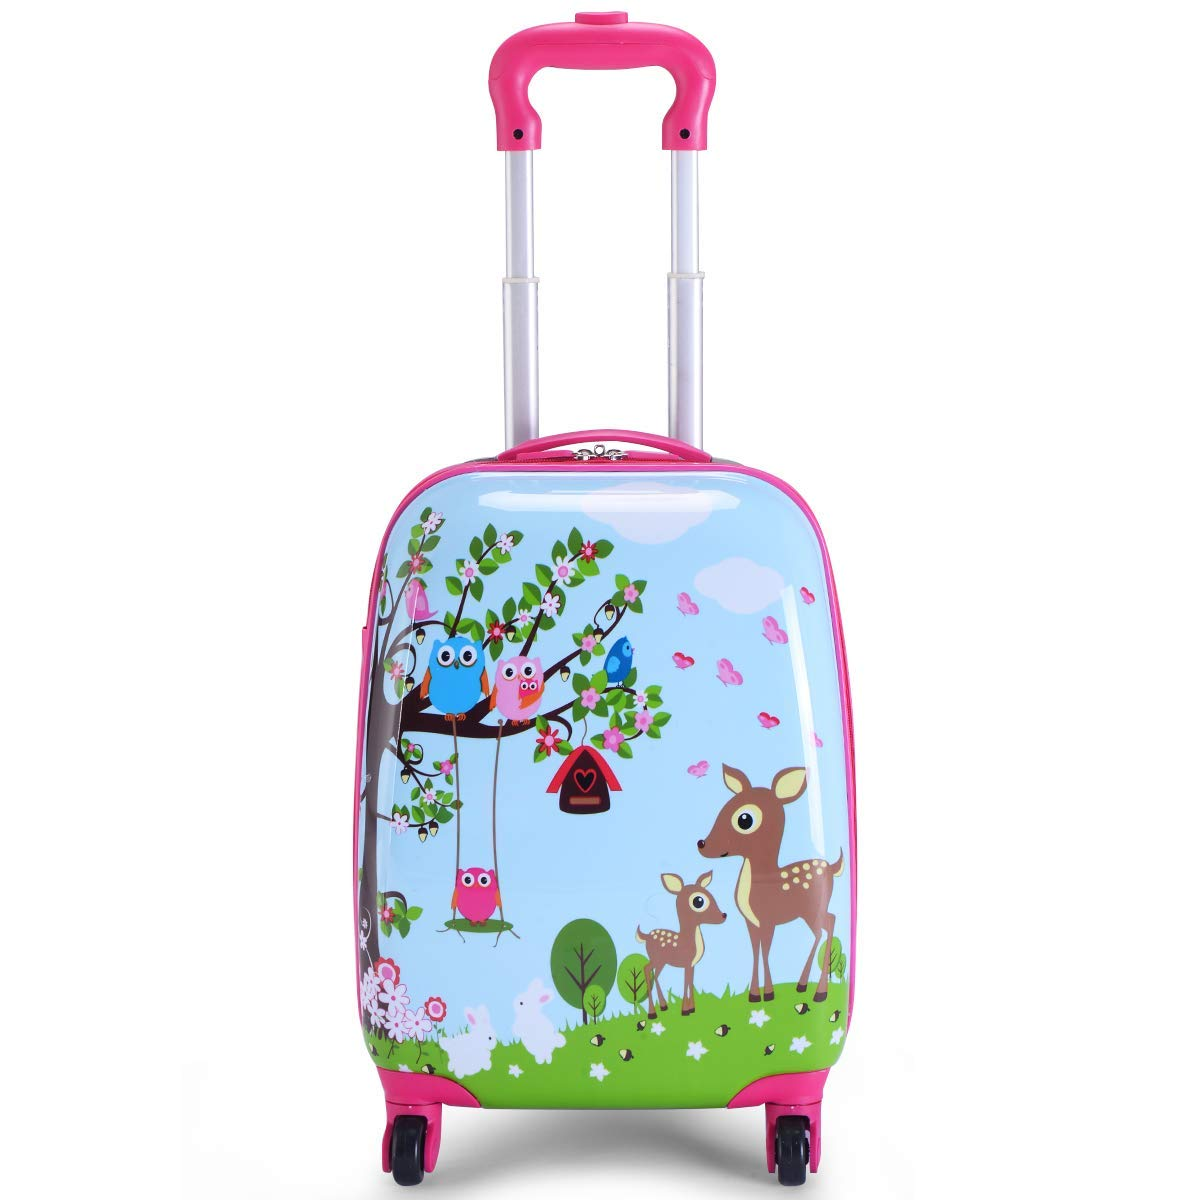 MOREFUN 2 Pcs Kids Travel Luggage Set 18'' Carry on Luggage and 13'' Backpack (Deer) by Morefun Trading (Image #4)